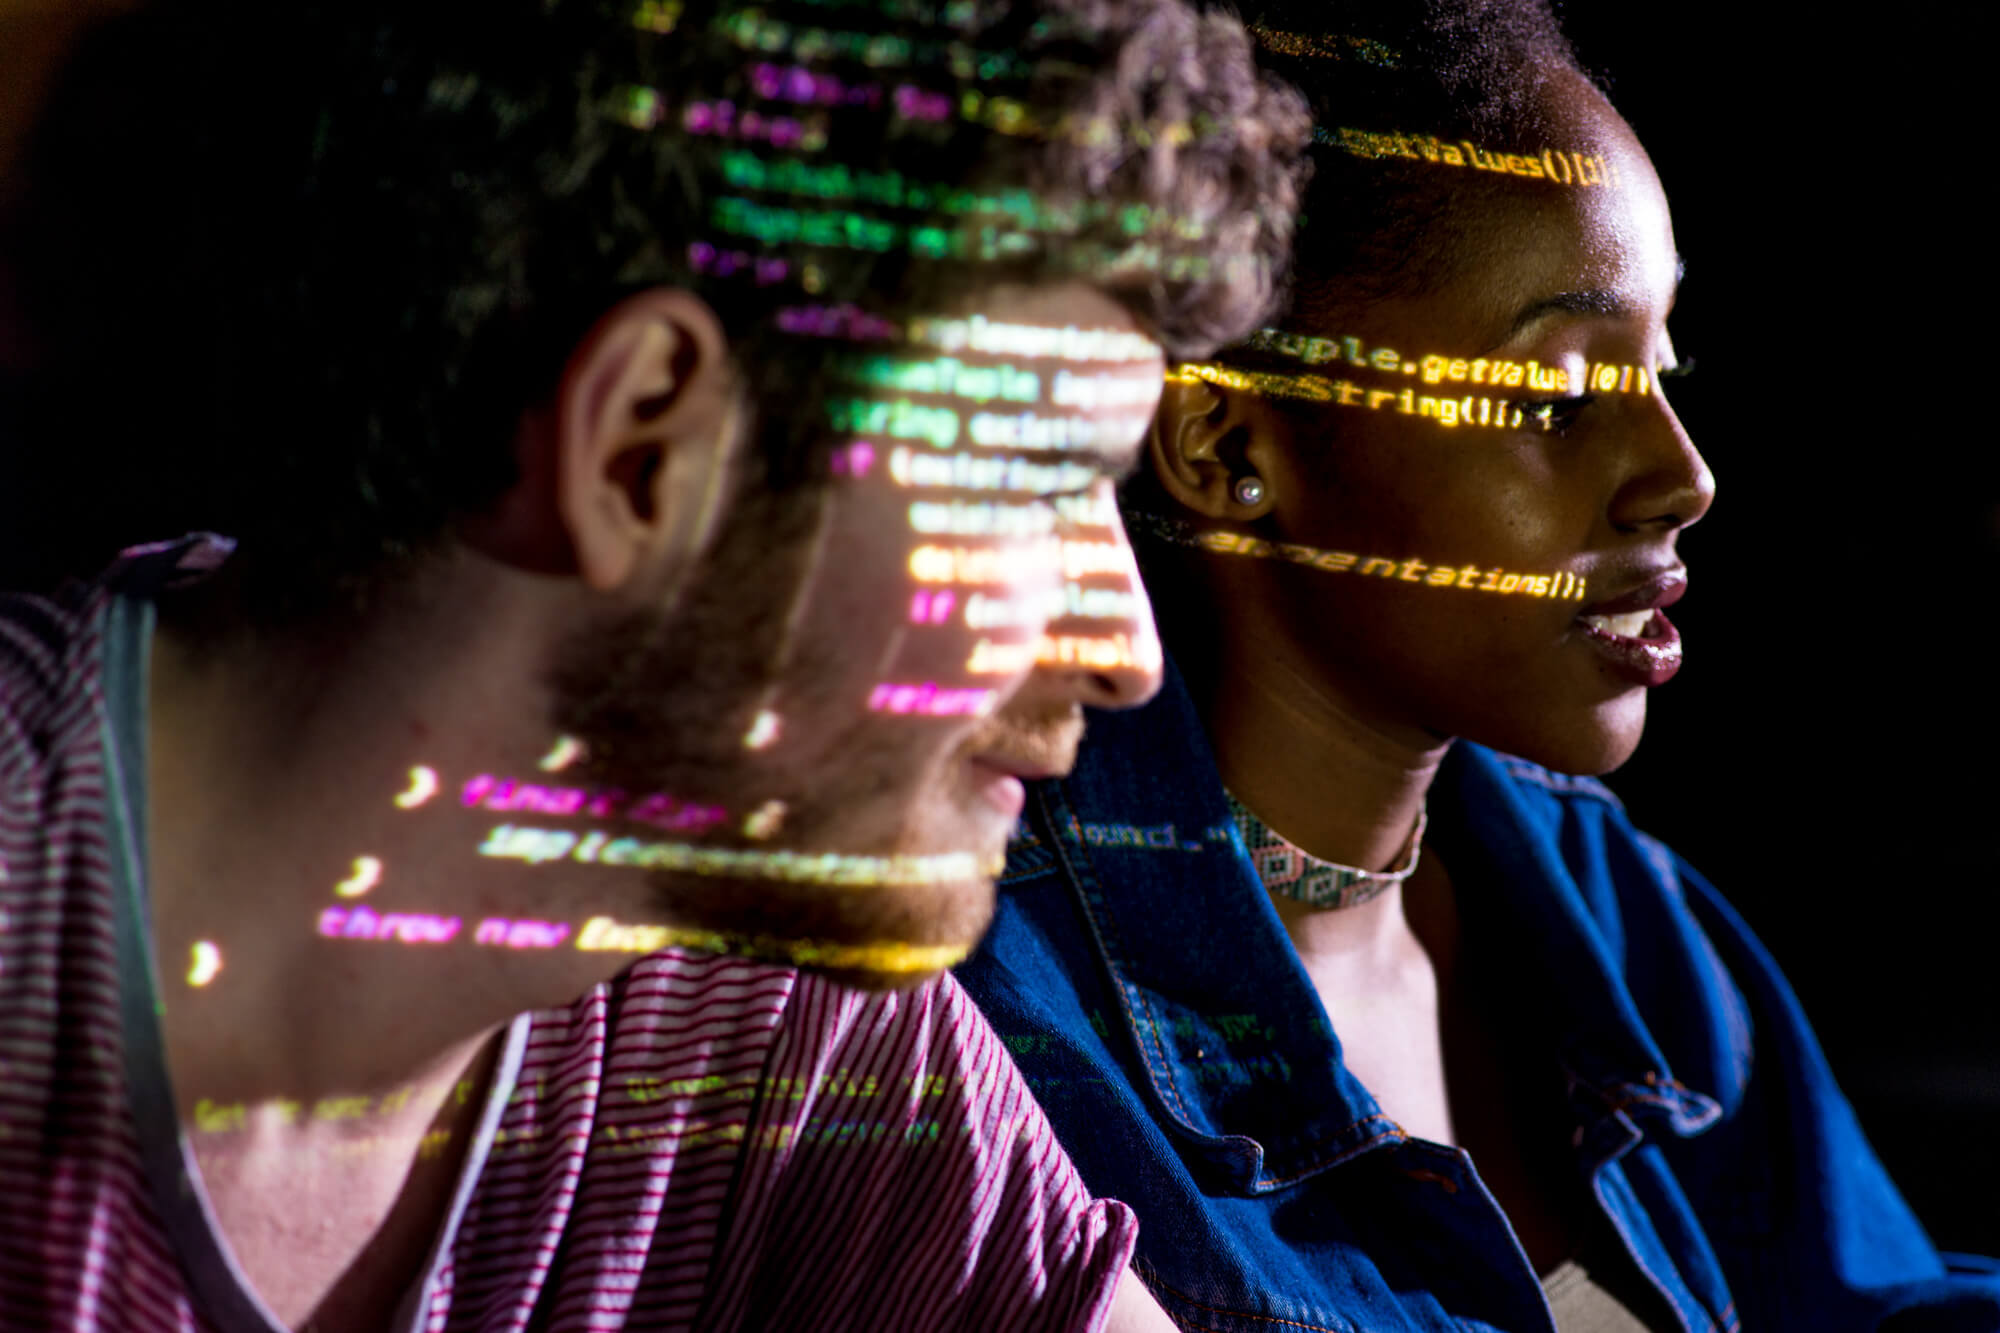 Computing code reflected on students faces